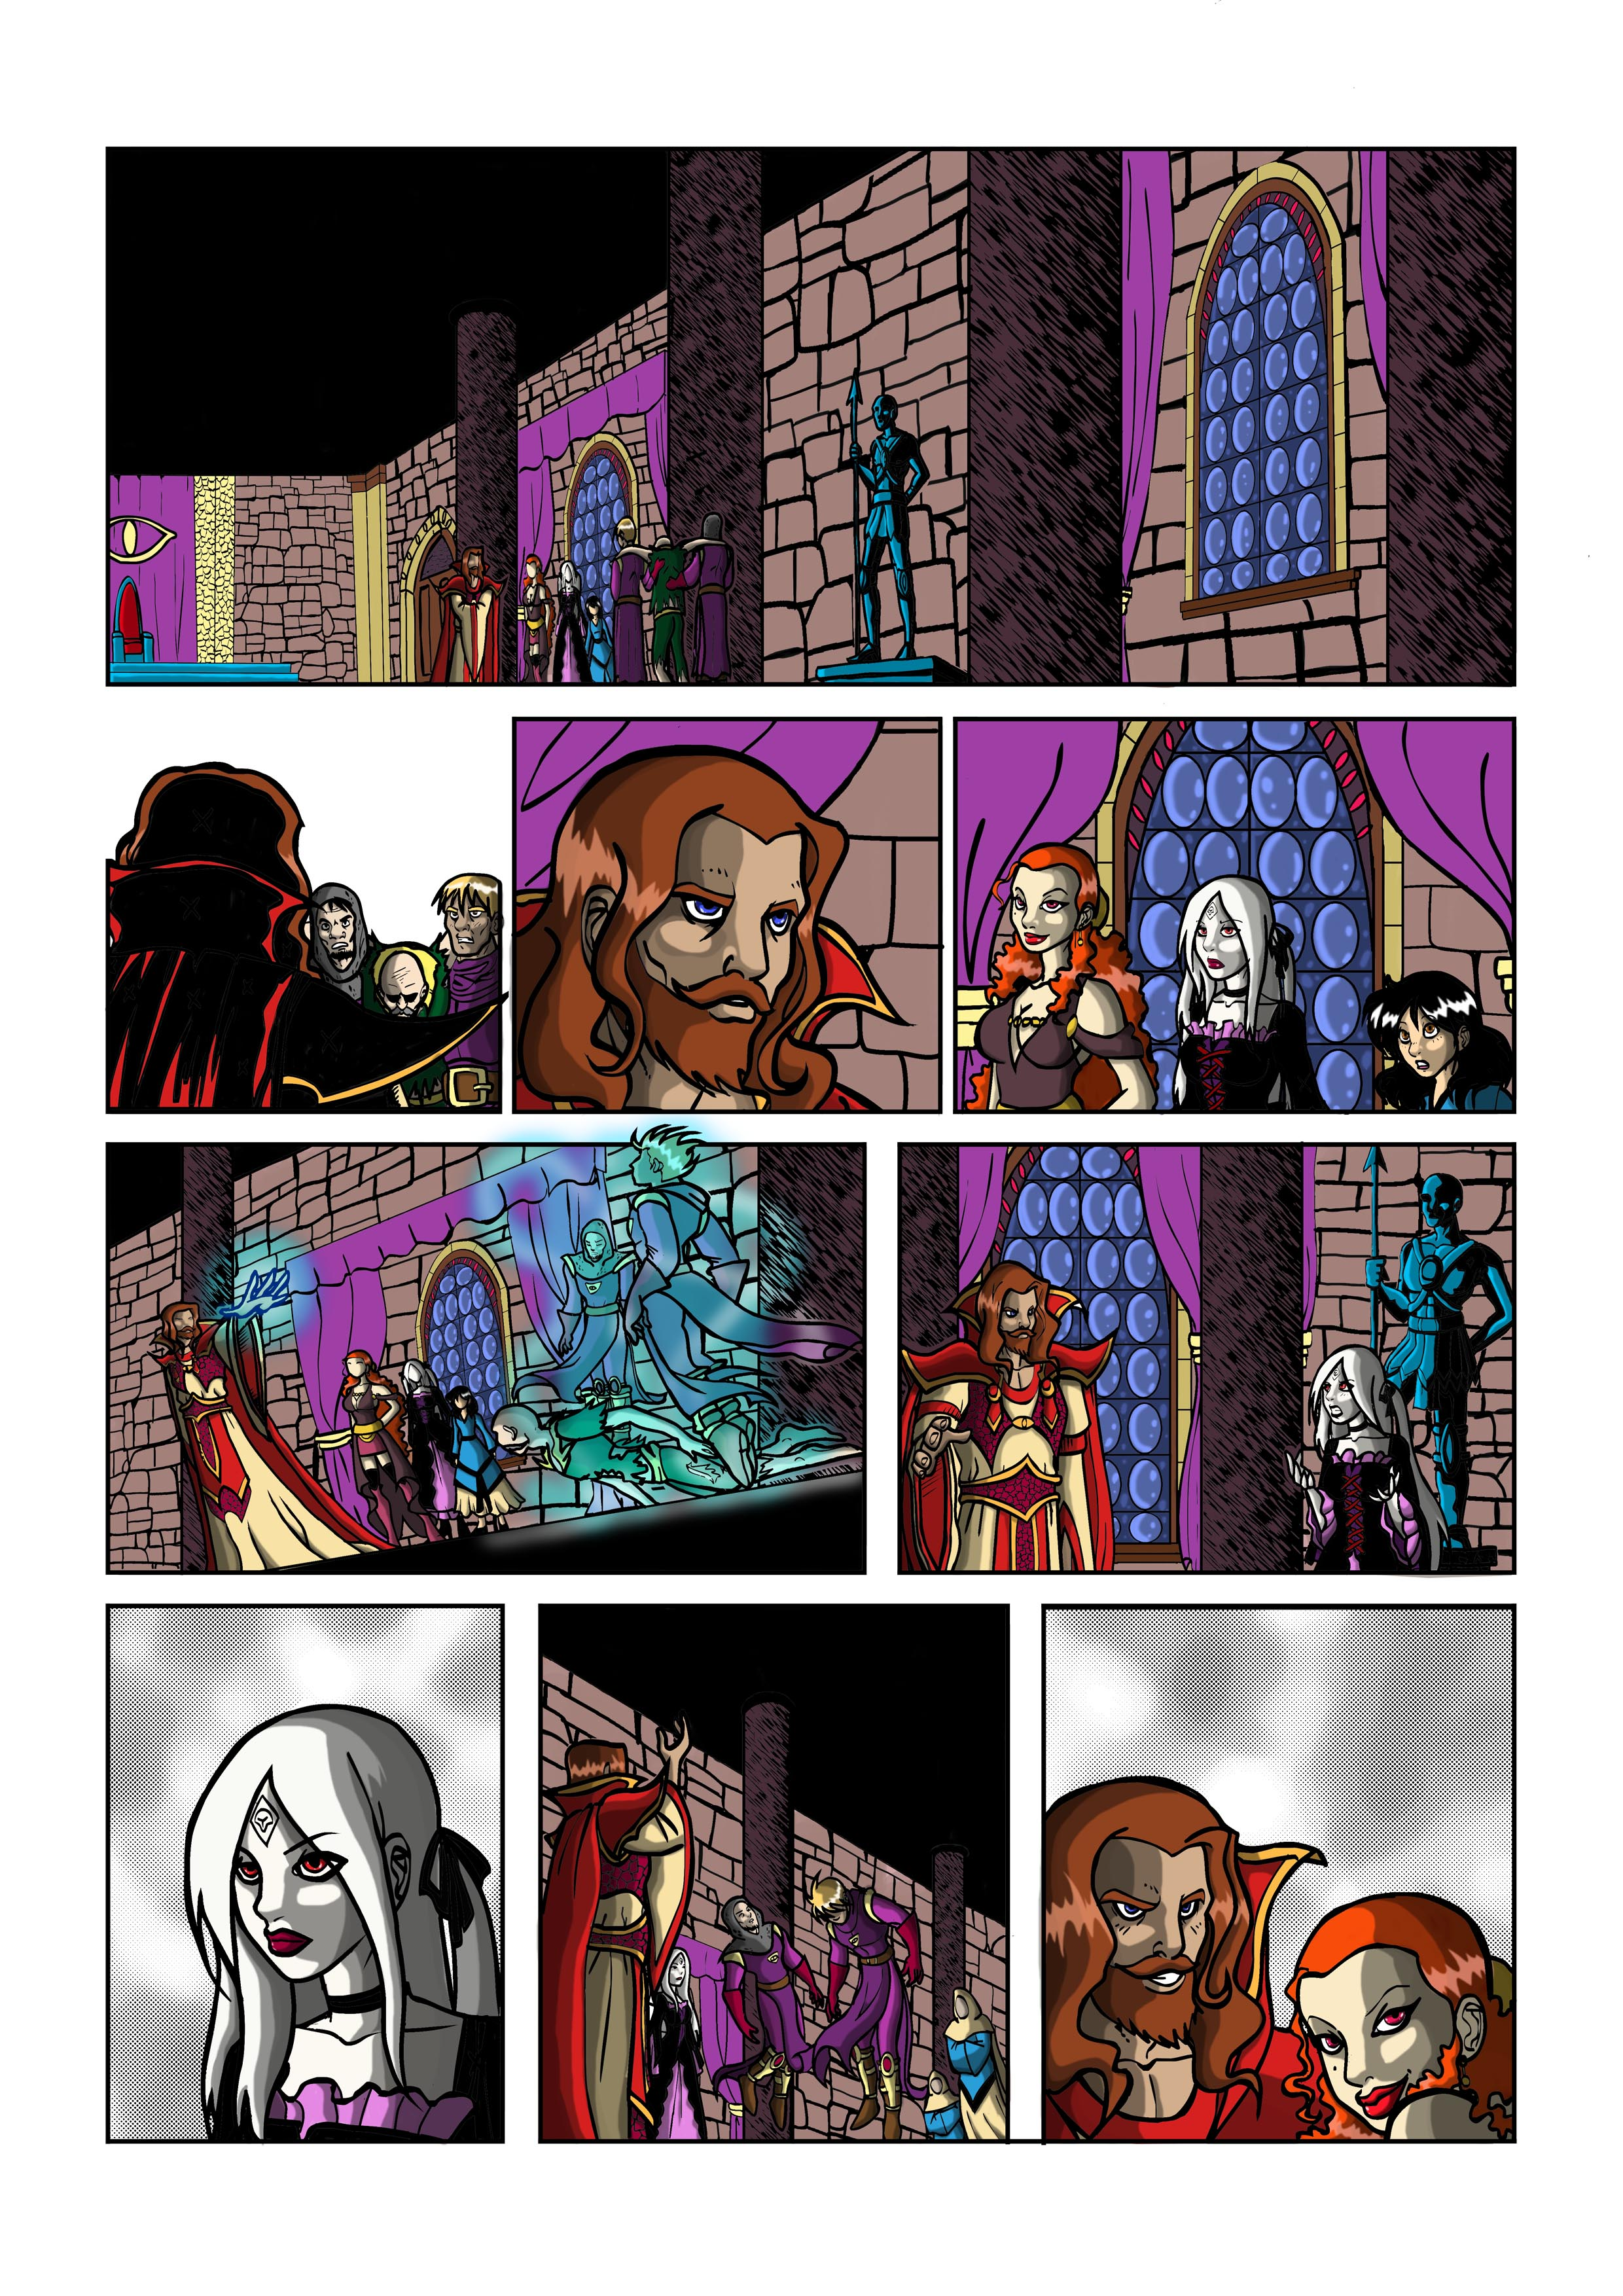 Another damned page :)